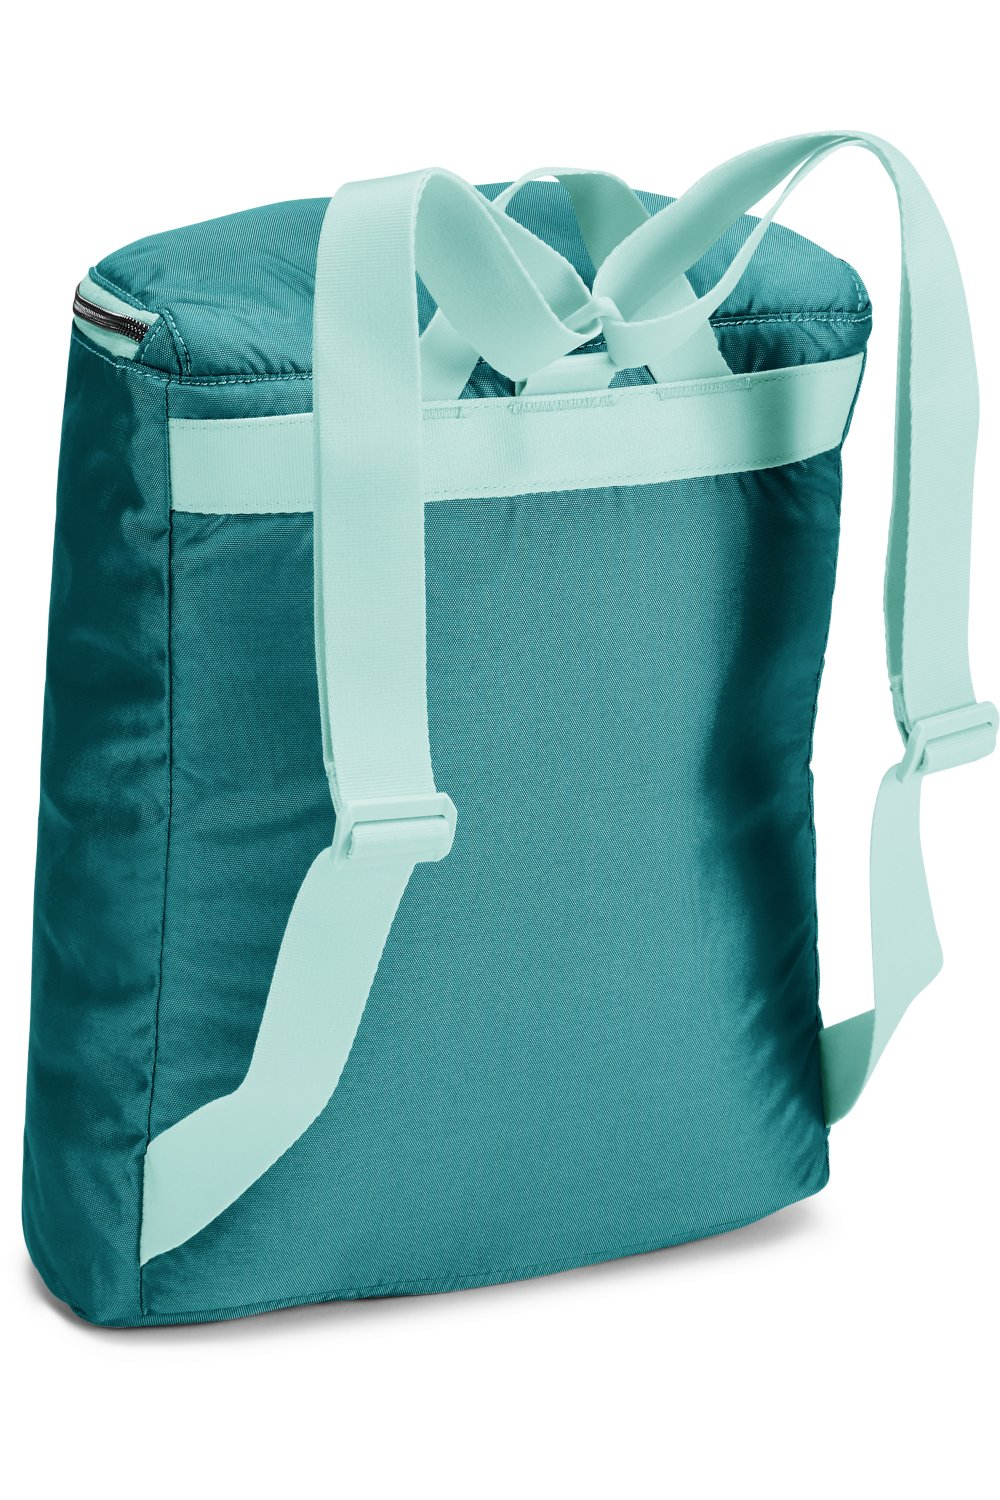 e5ec6bcb Under Armour turquoise sports backpack Midi Backpack